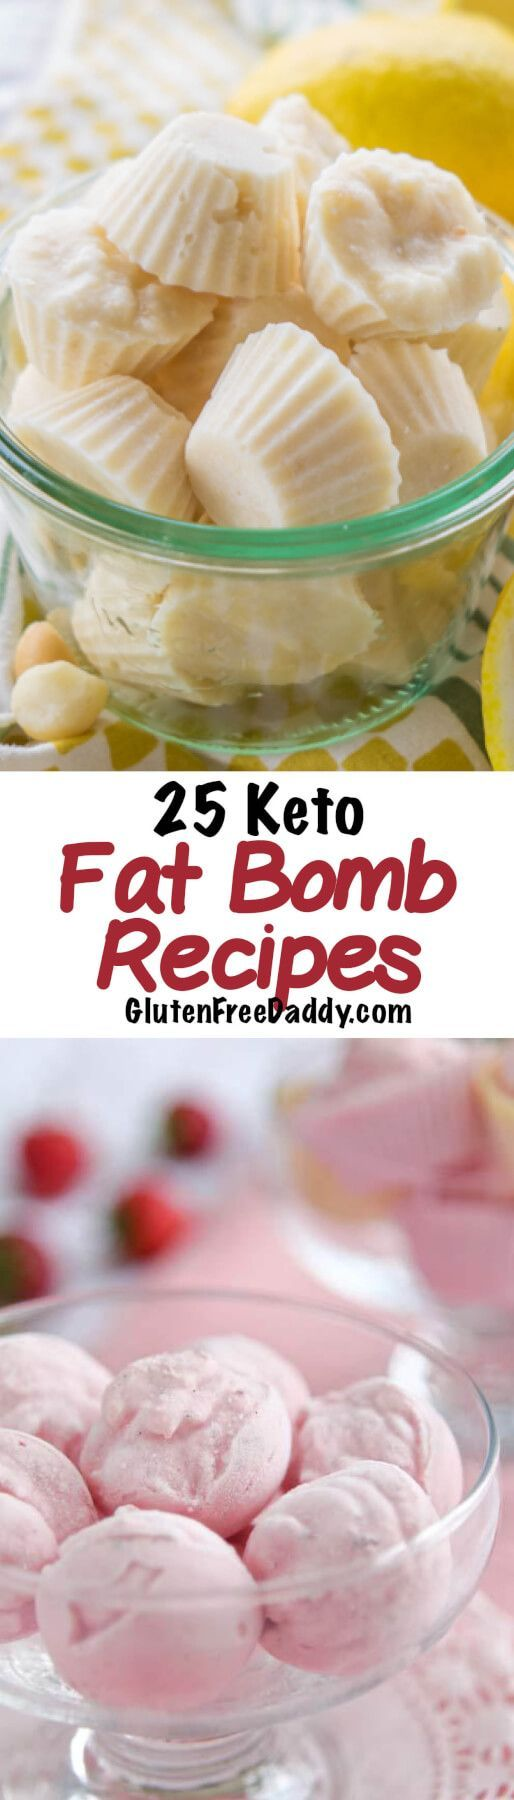 I have 25 of the best ever Keto fat bomb recipes, all of which will help you induce ketosis. Just looking at these pictures makes me want to eat them.